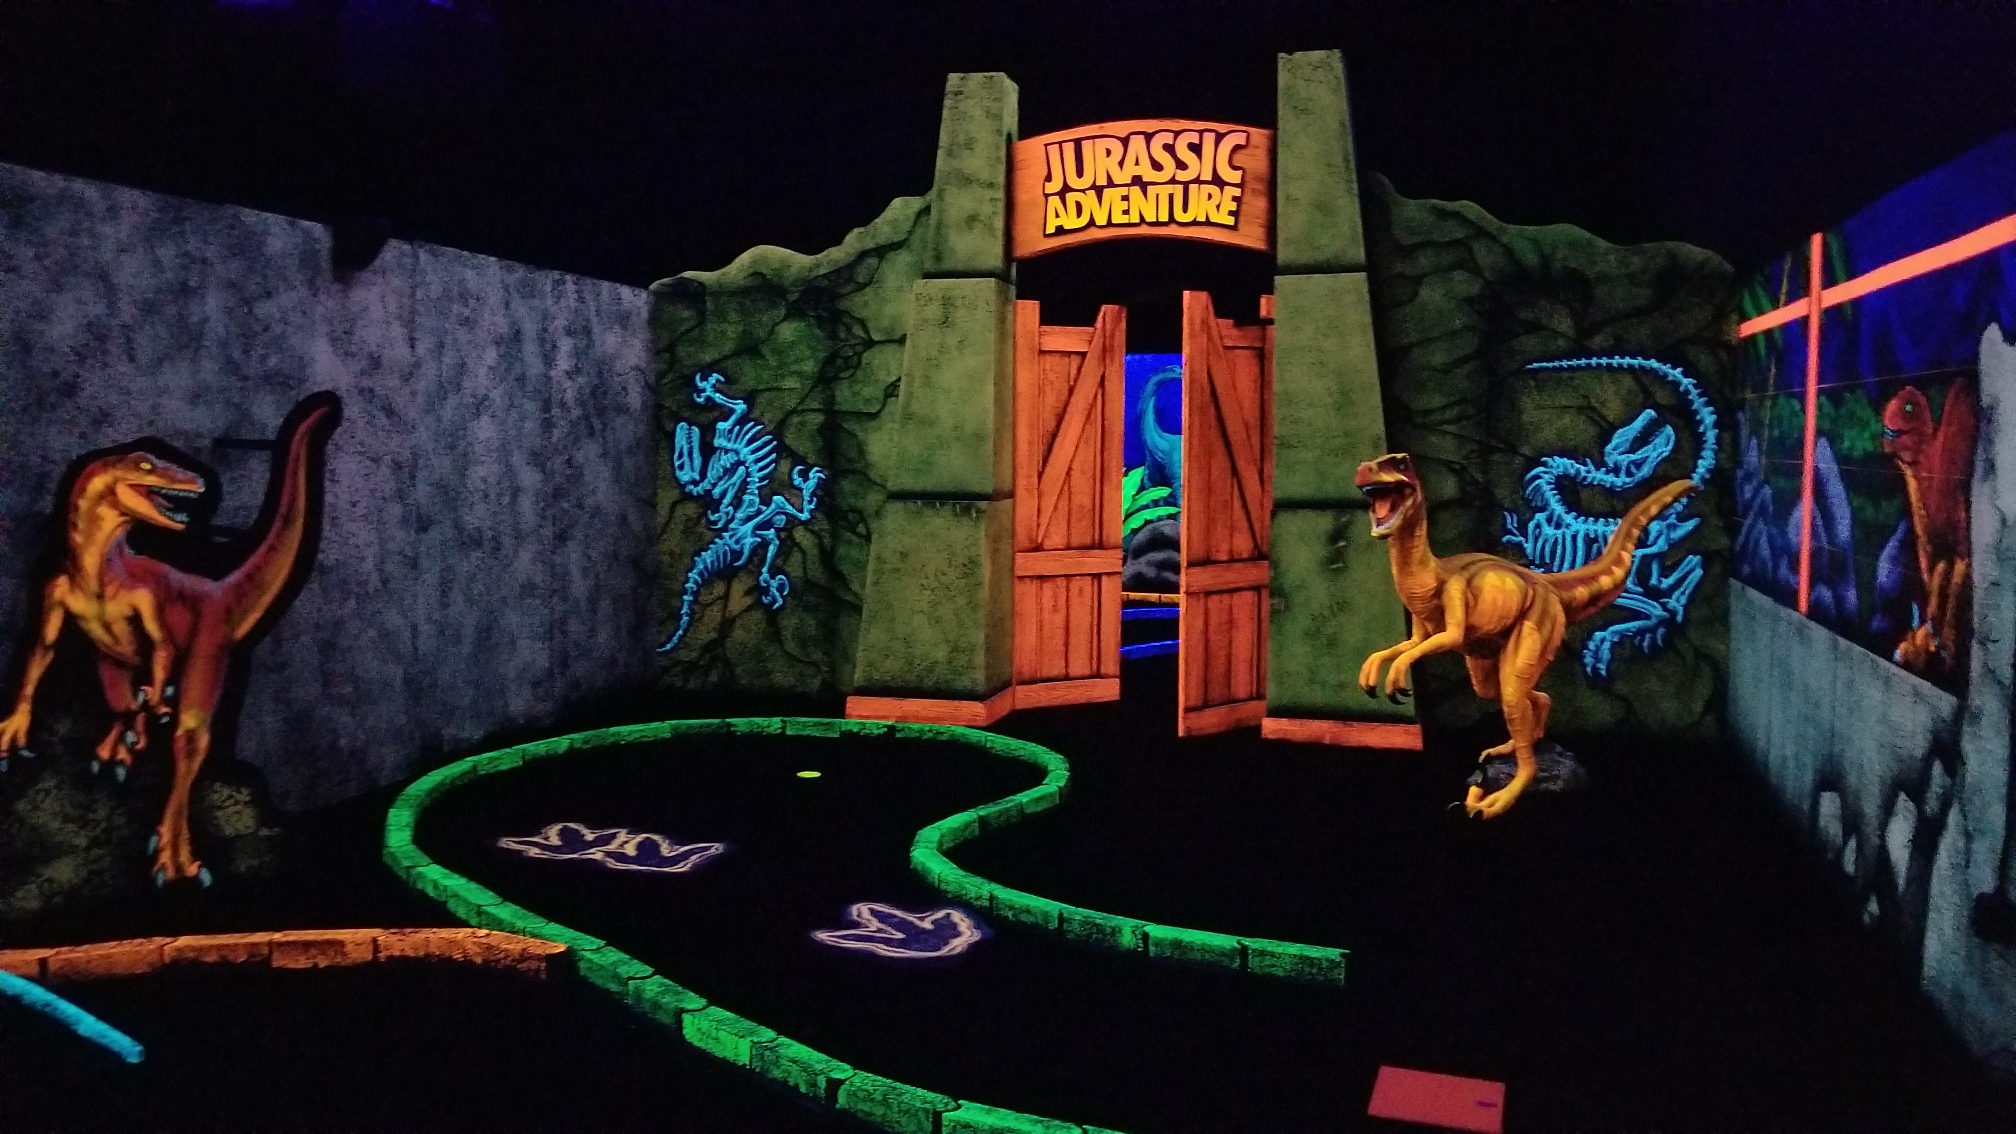 Half Price Mini Golf at Jurassic Golf in Bel Air!